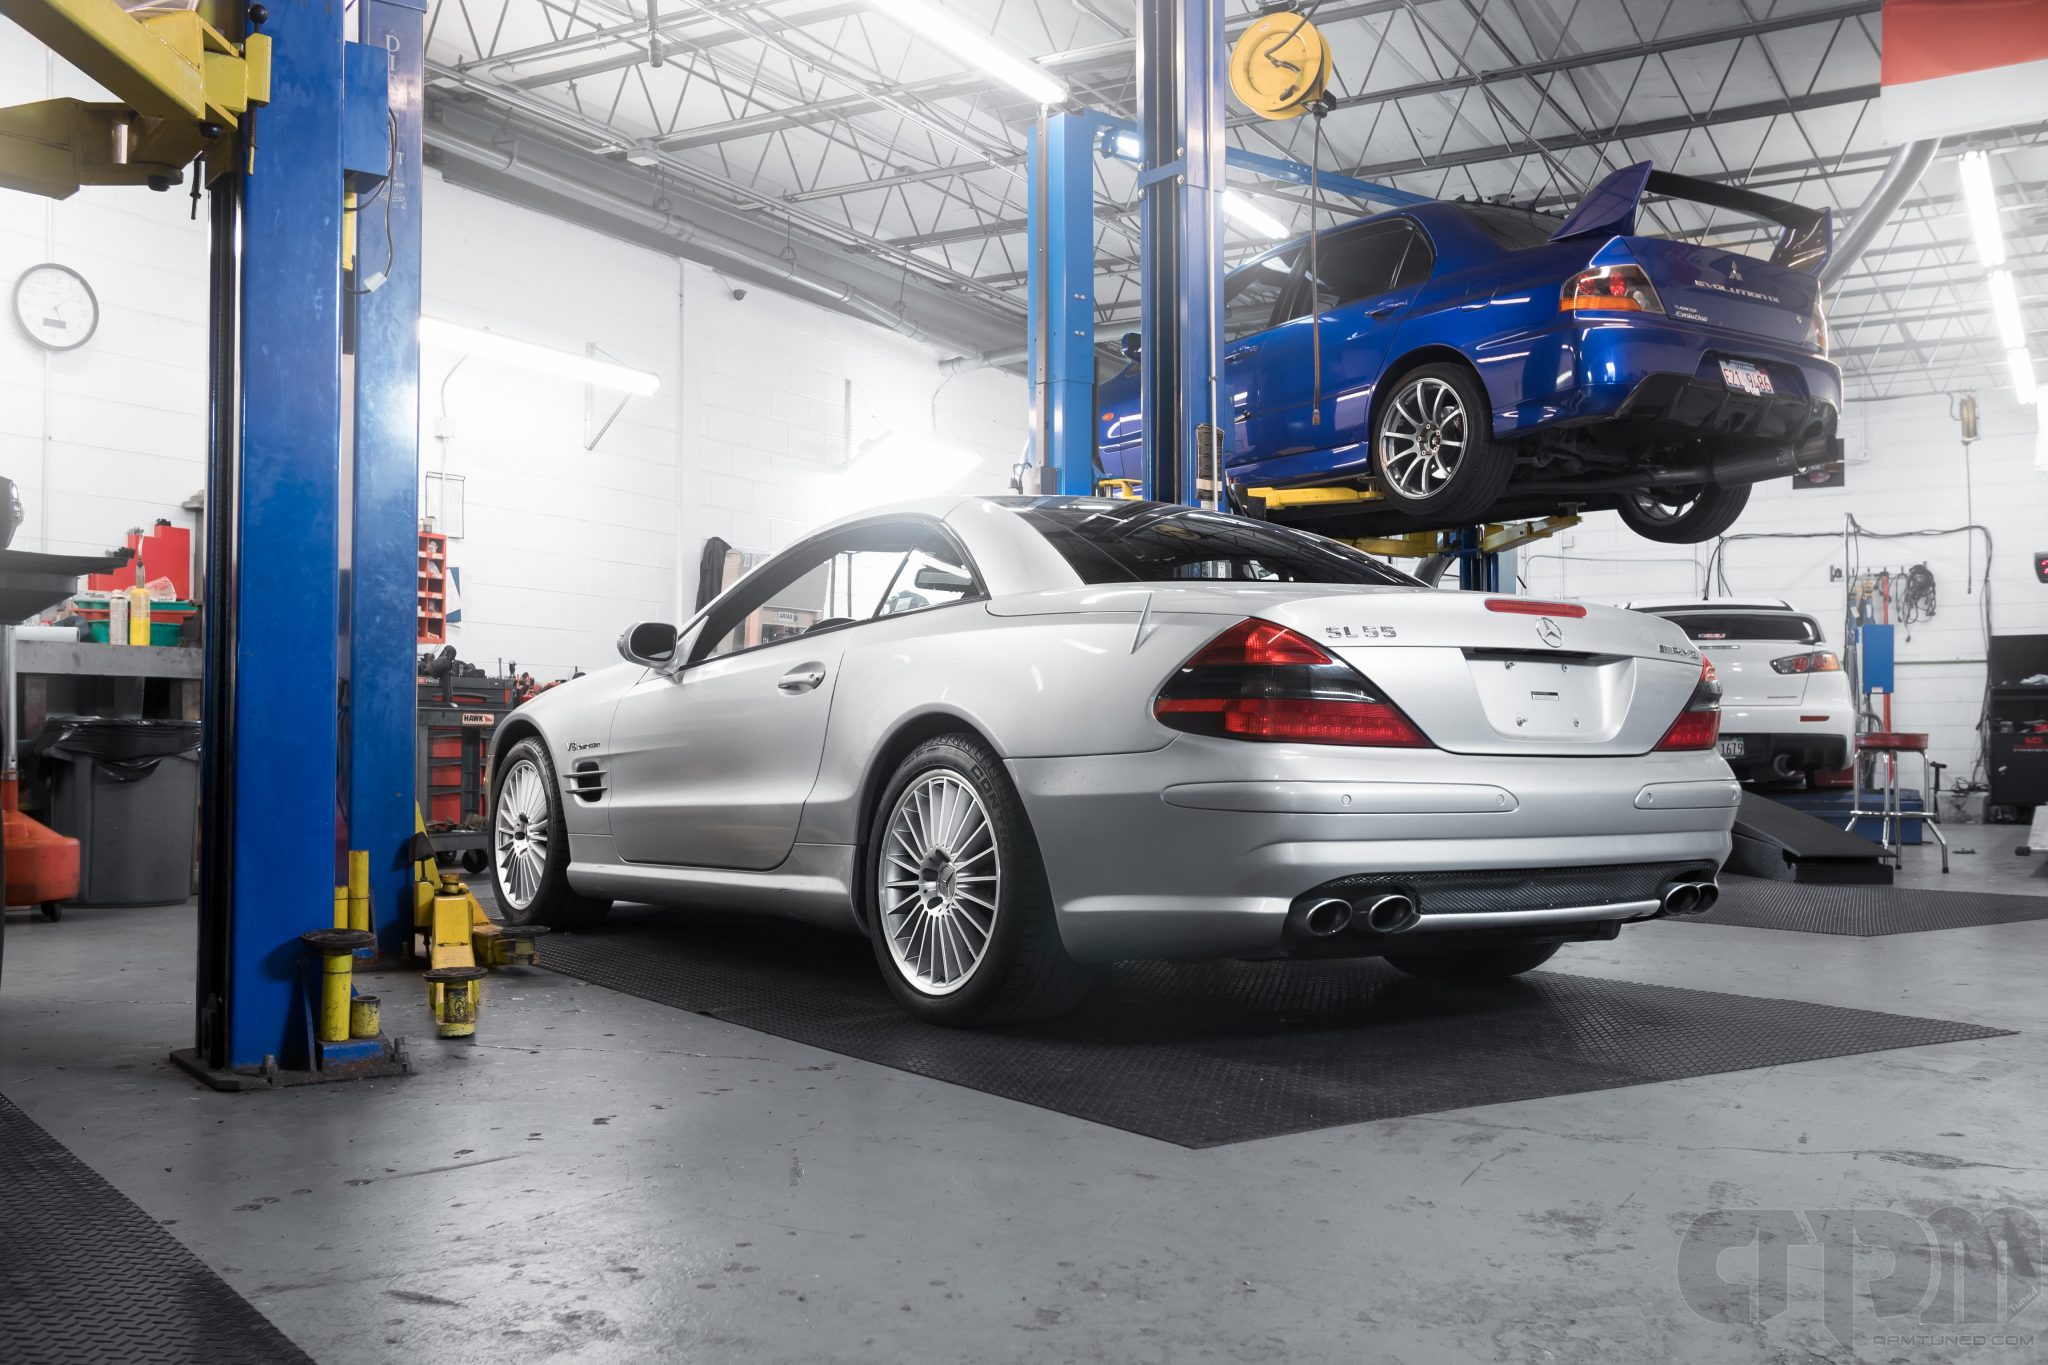 Mercedes SL55 AMG in our shop space